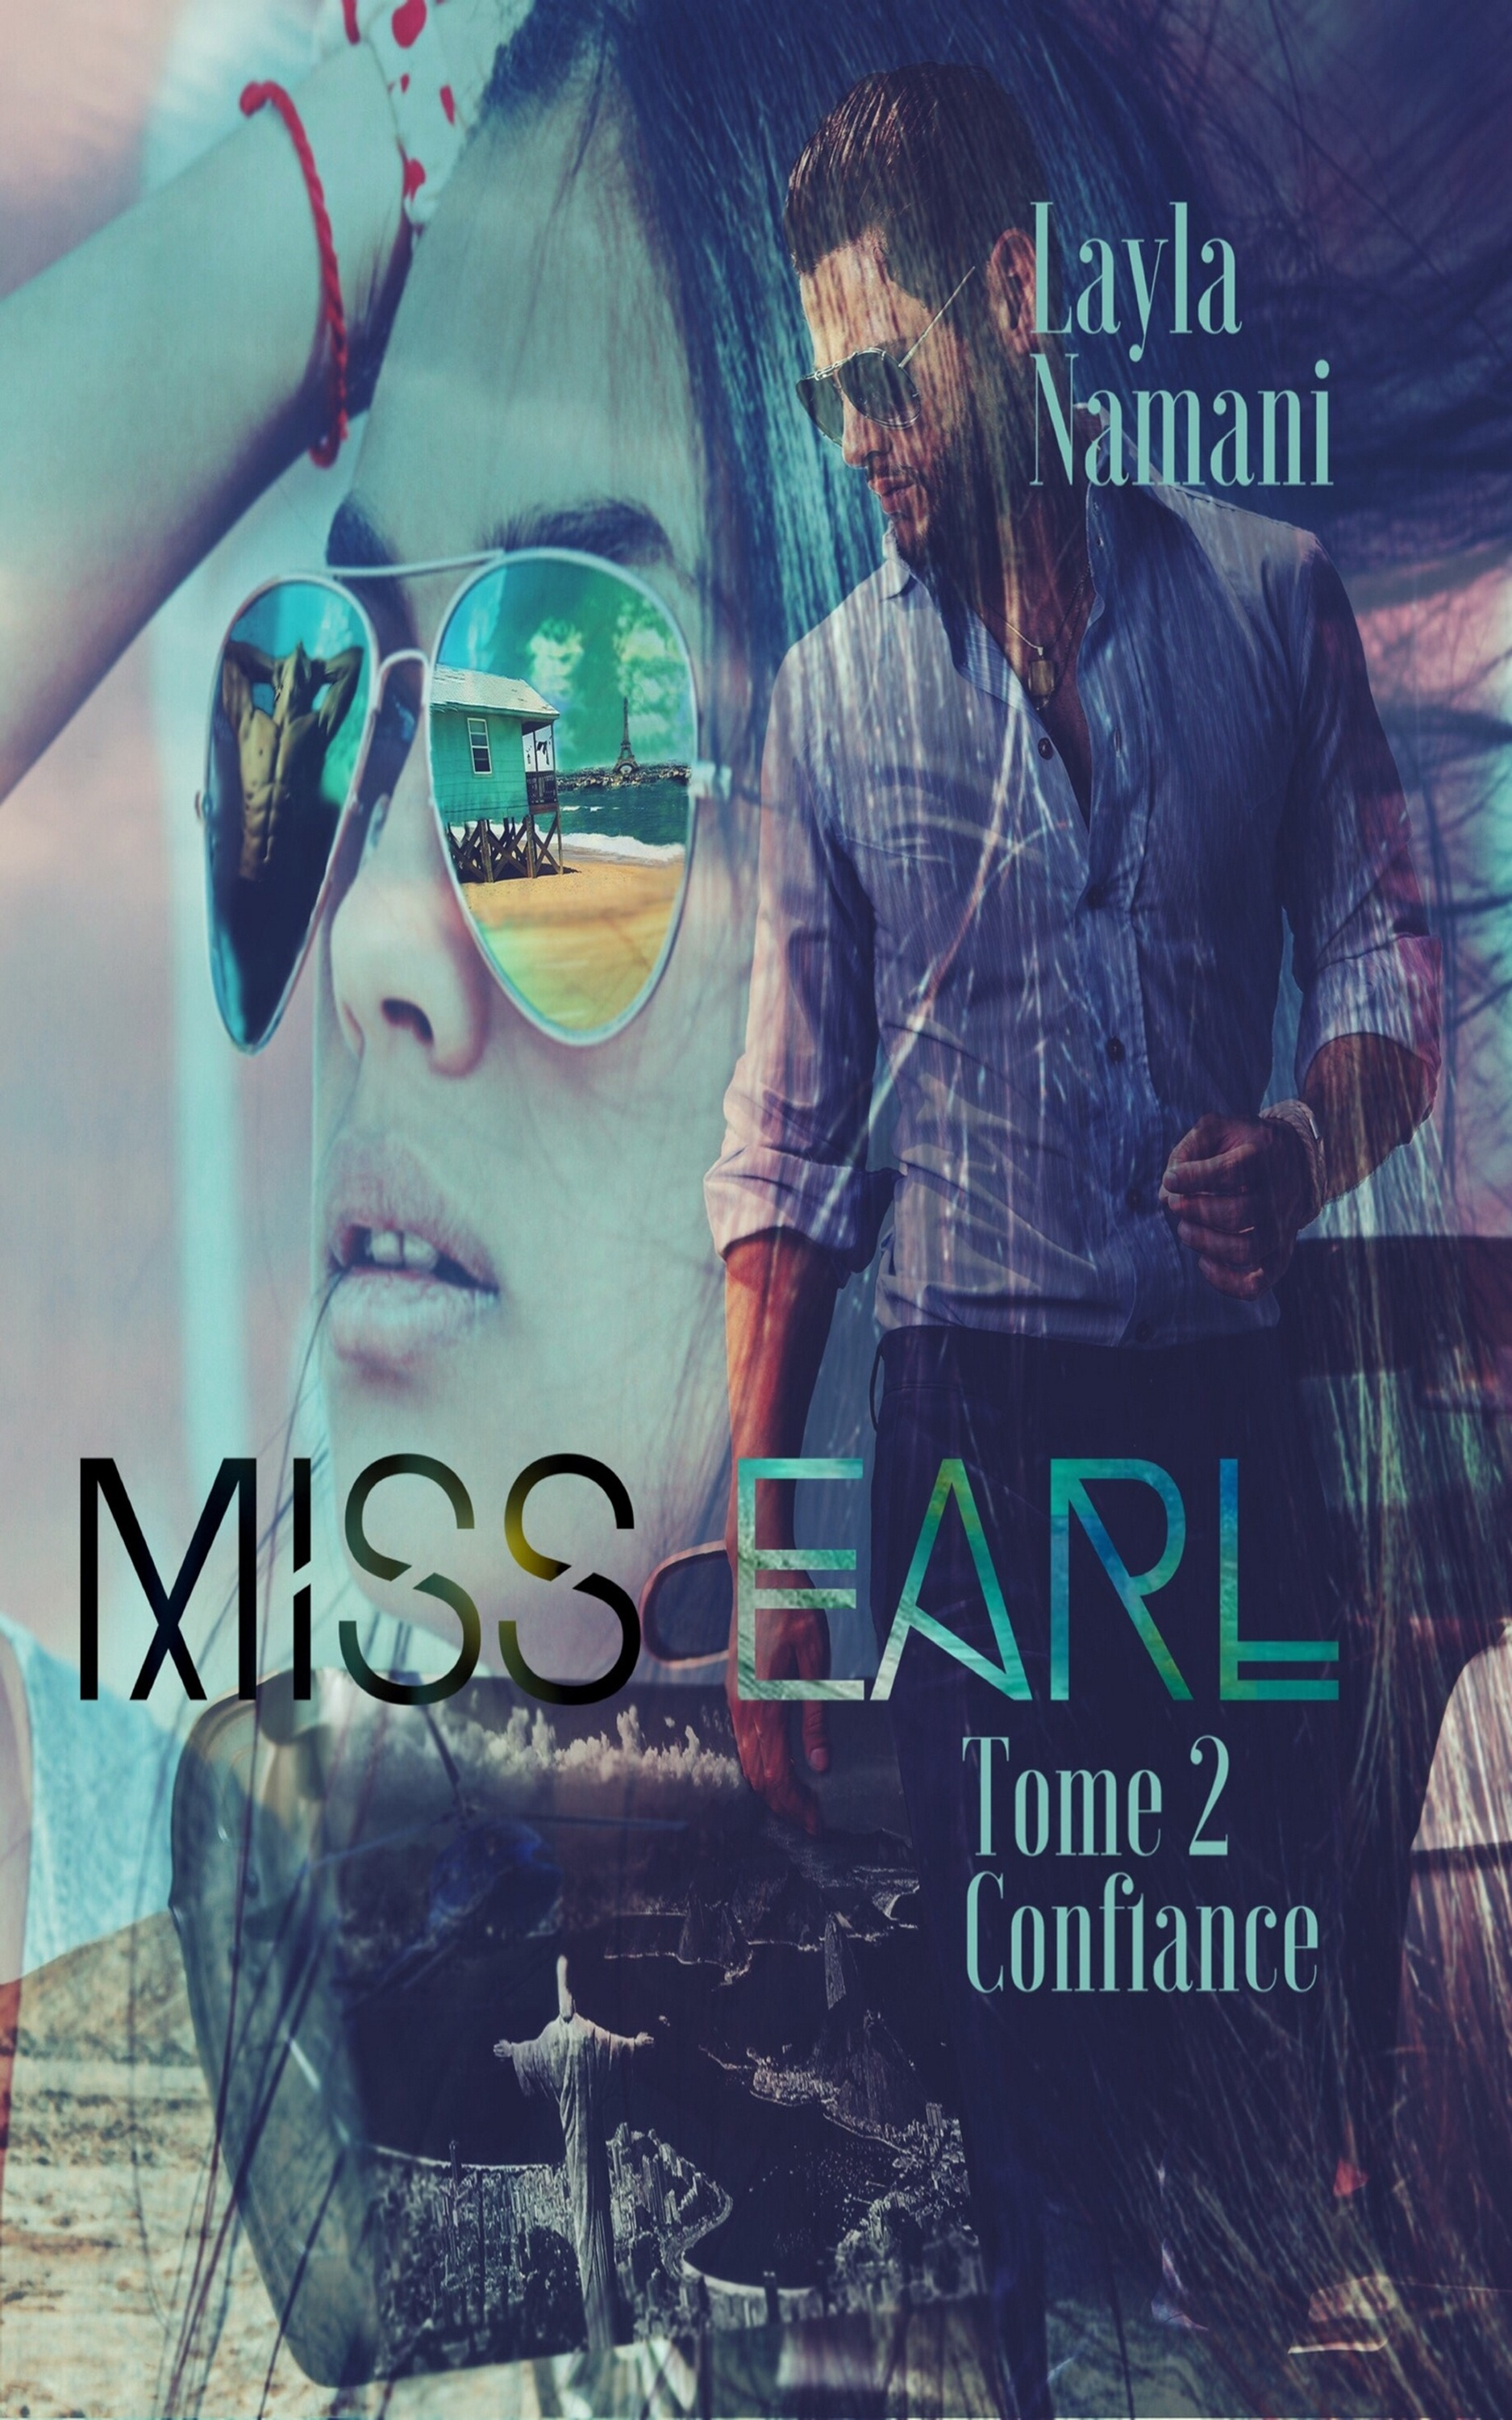 Miss Earl, TOME 2 CONFIANCE